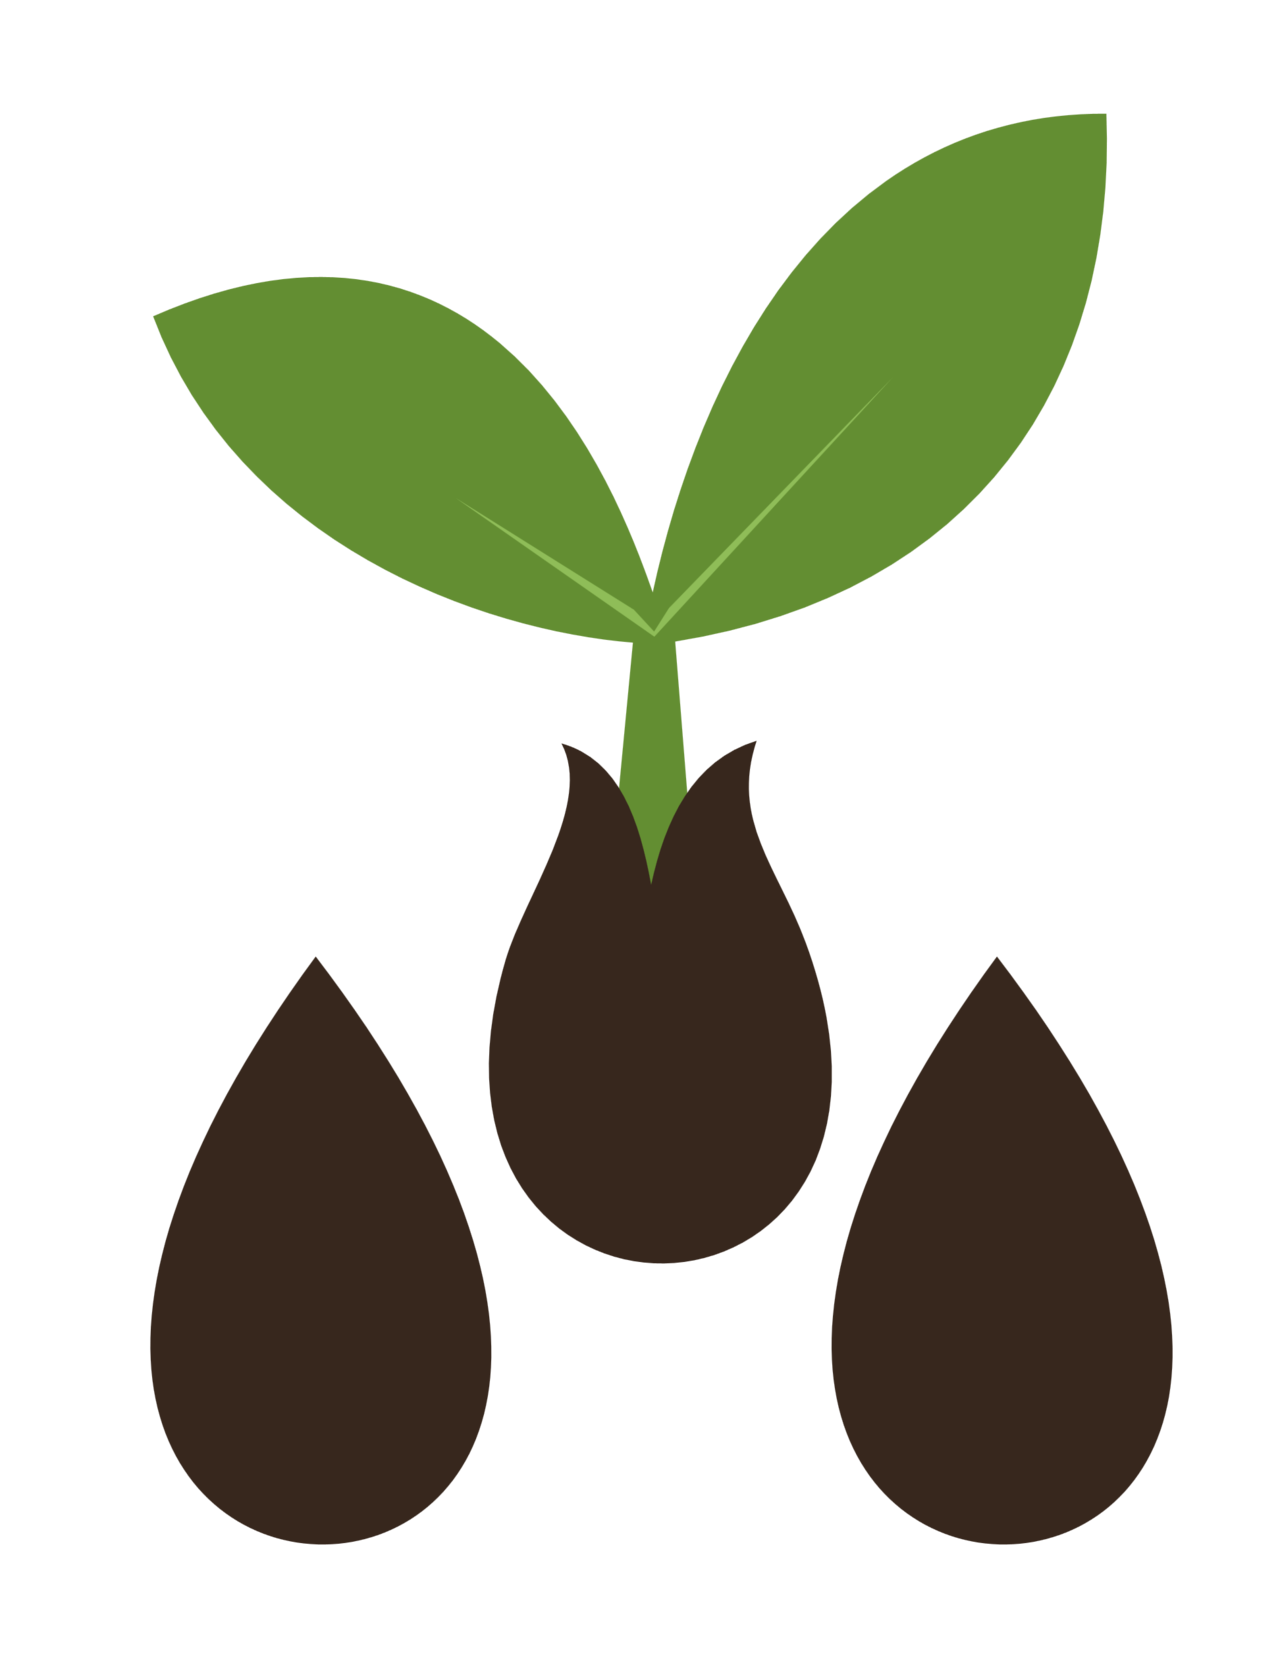 Growth clipart tree sprout. Image result for seed